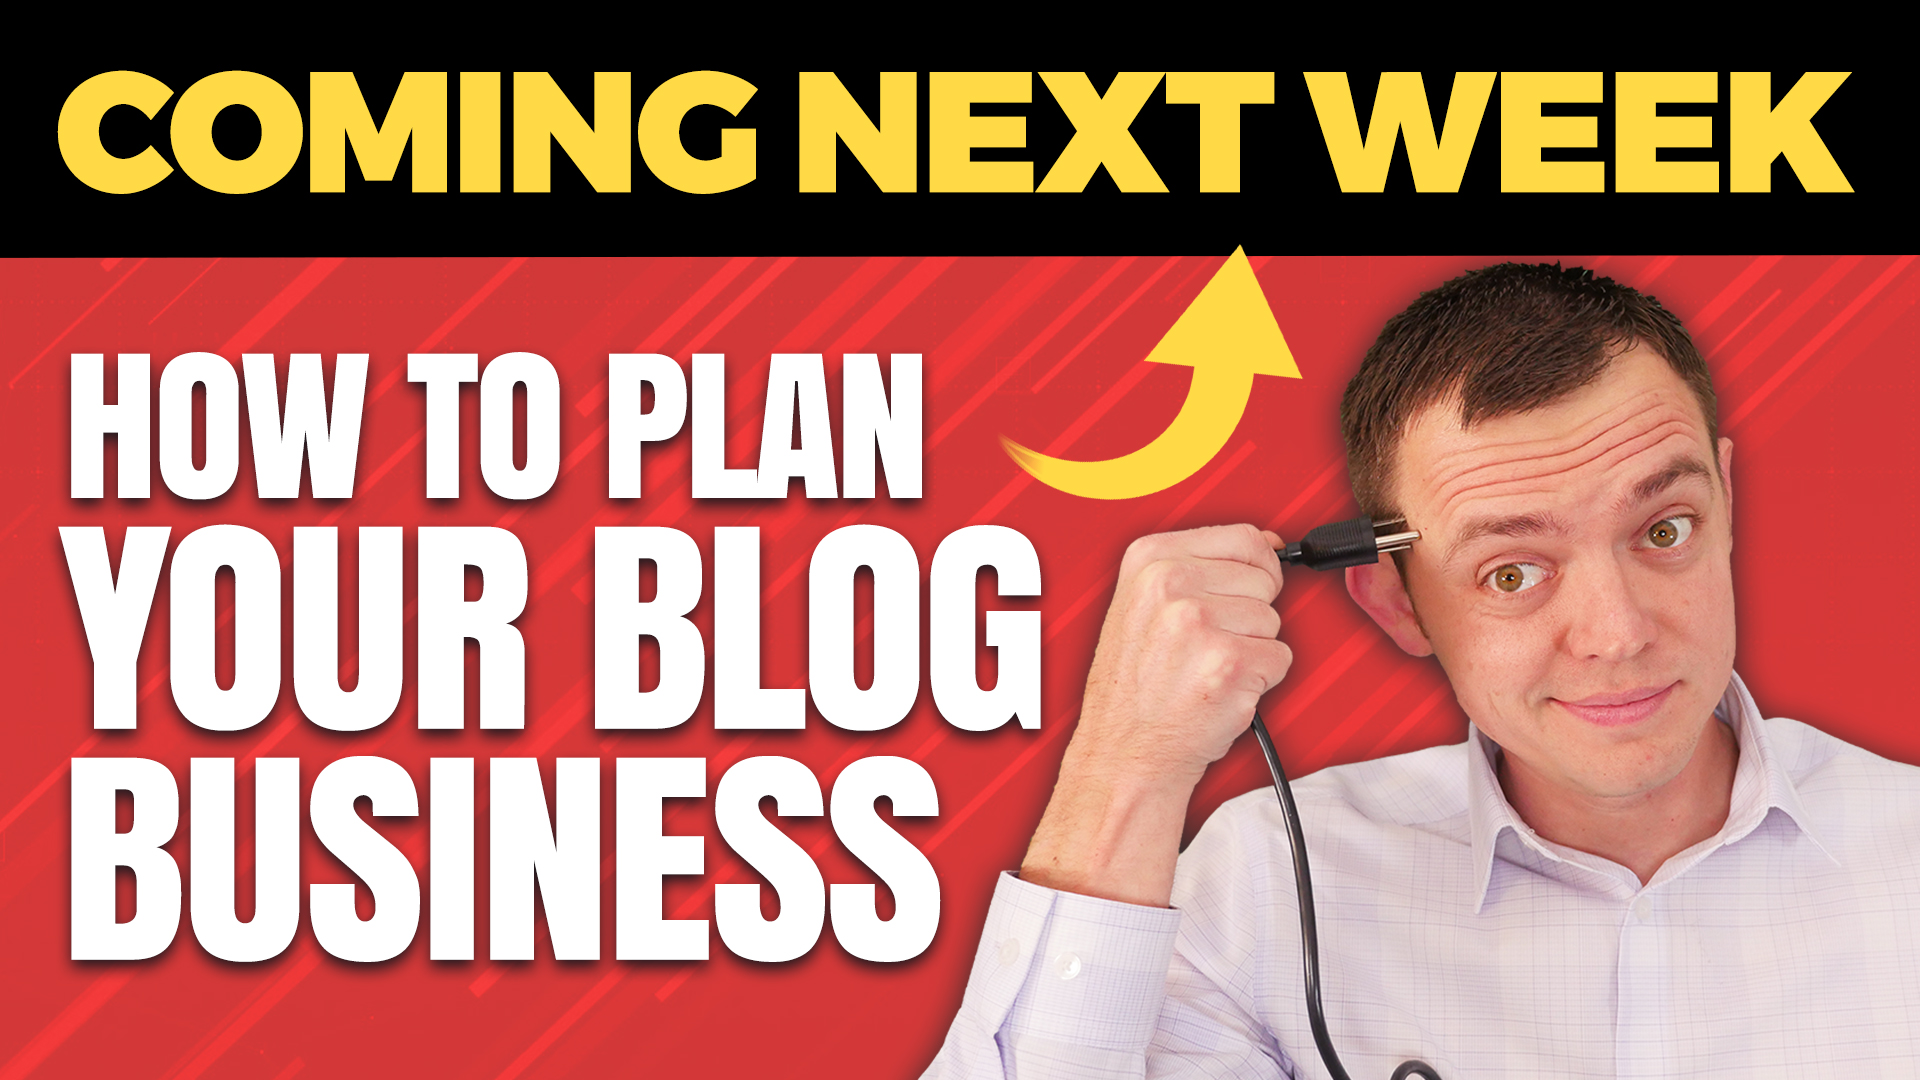 Coming Next Week 📆 How to Plan Your Blog Business